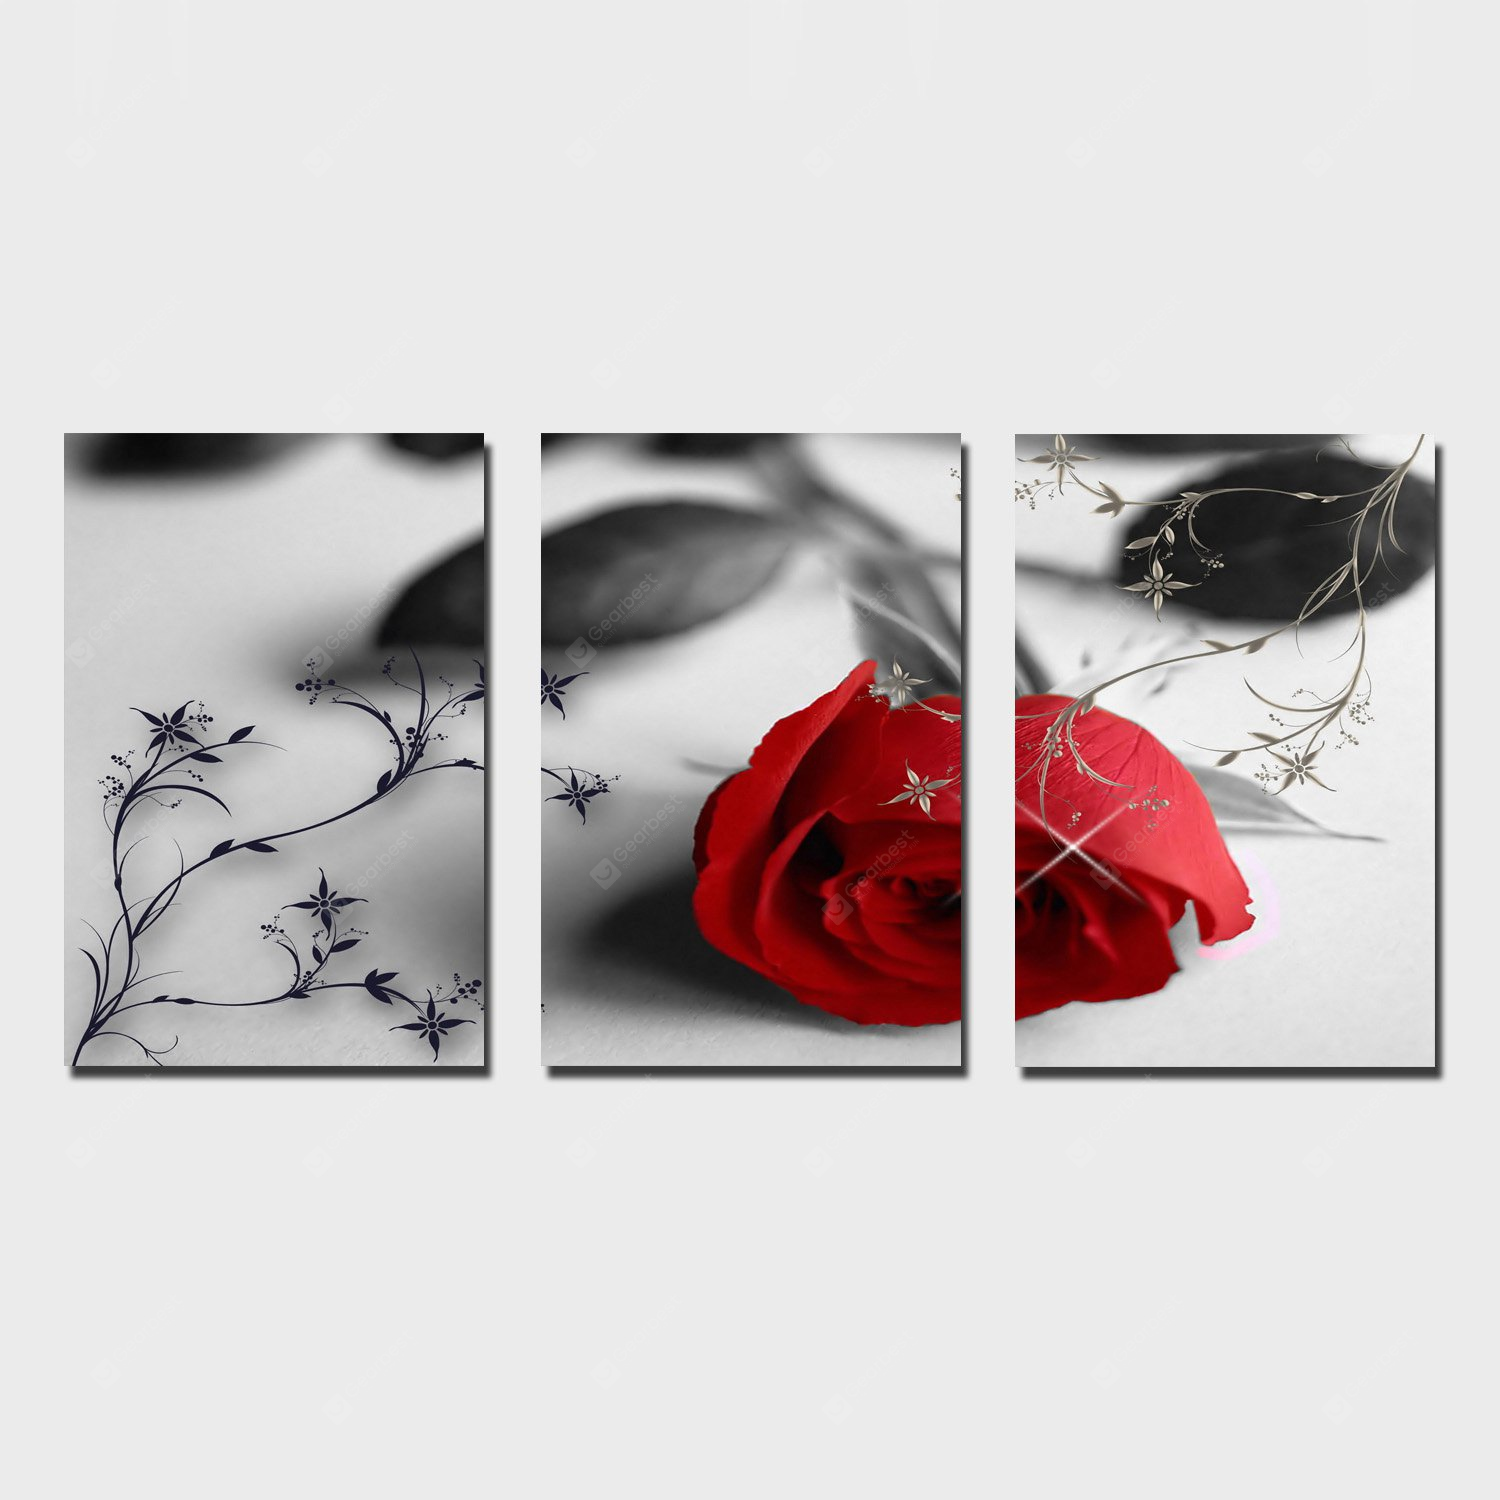 YSDAFEN Rose Printing Canvas Wall Decoration RED